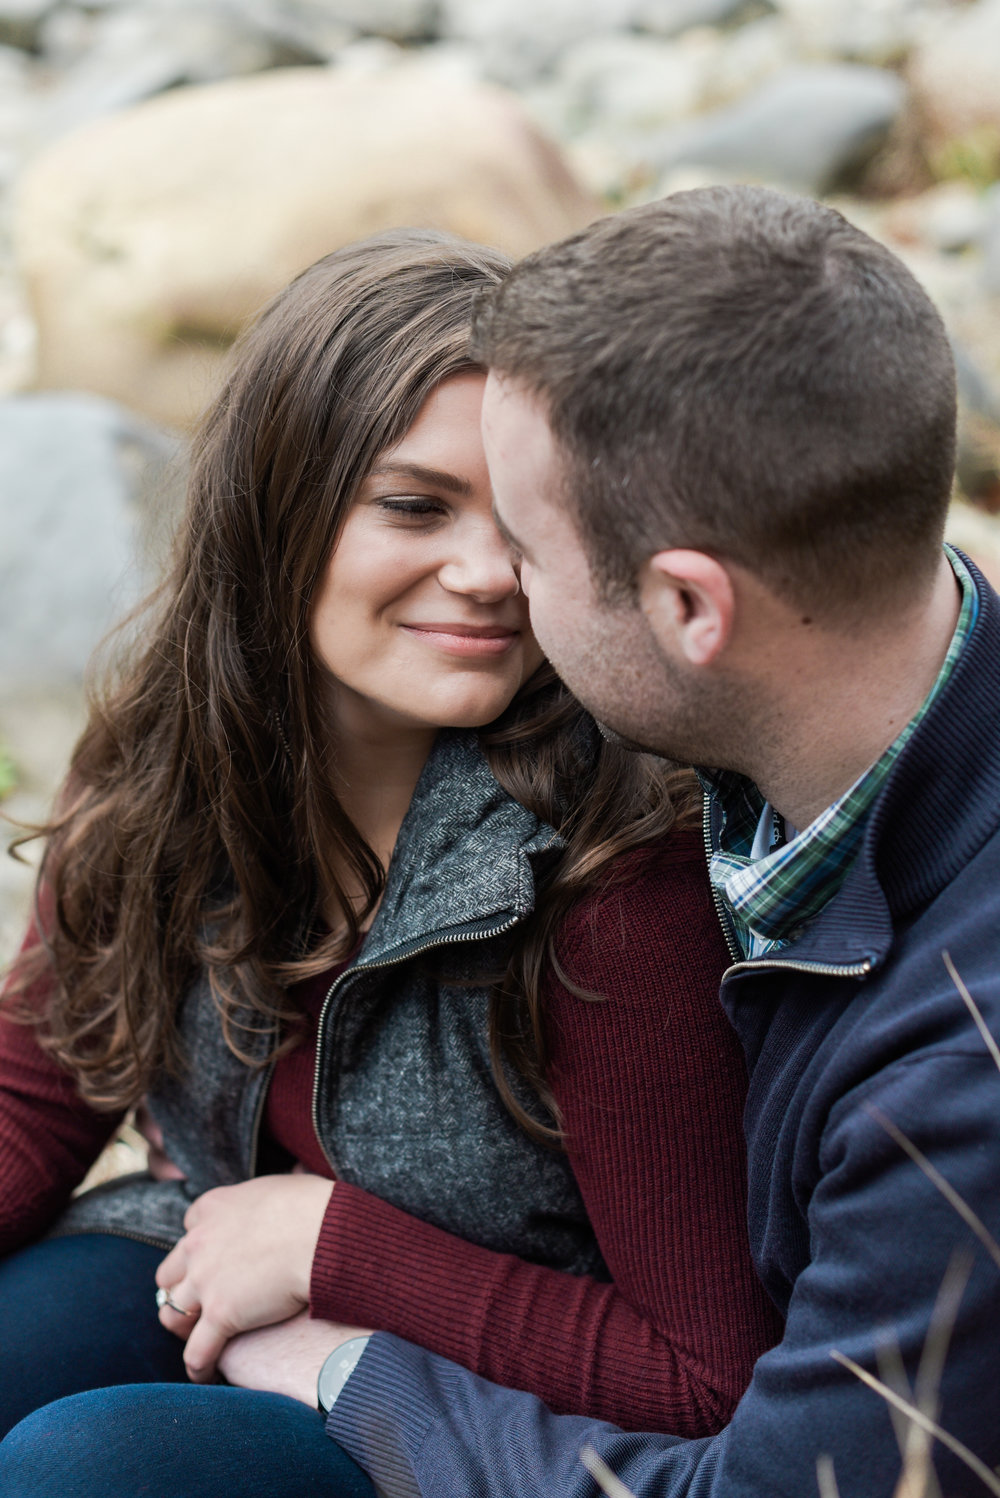 Engagement Photography in Western Mass